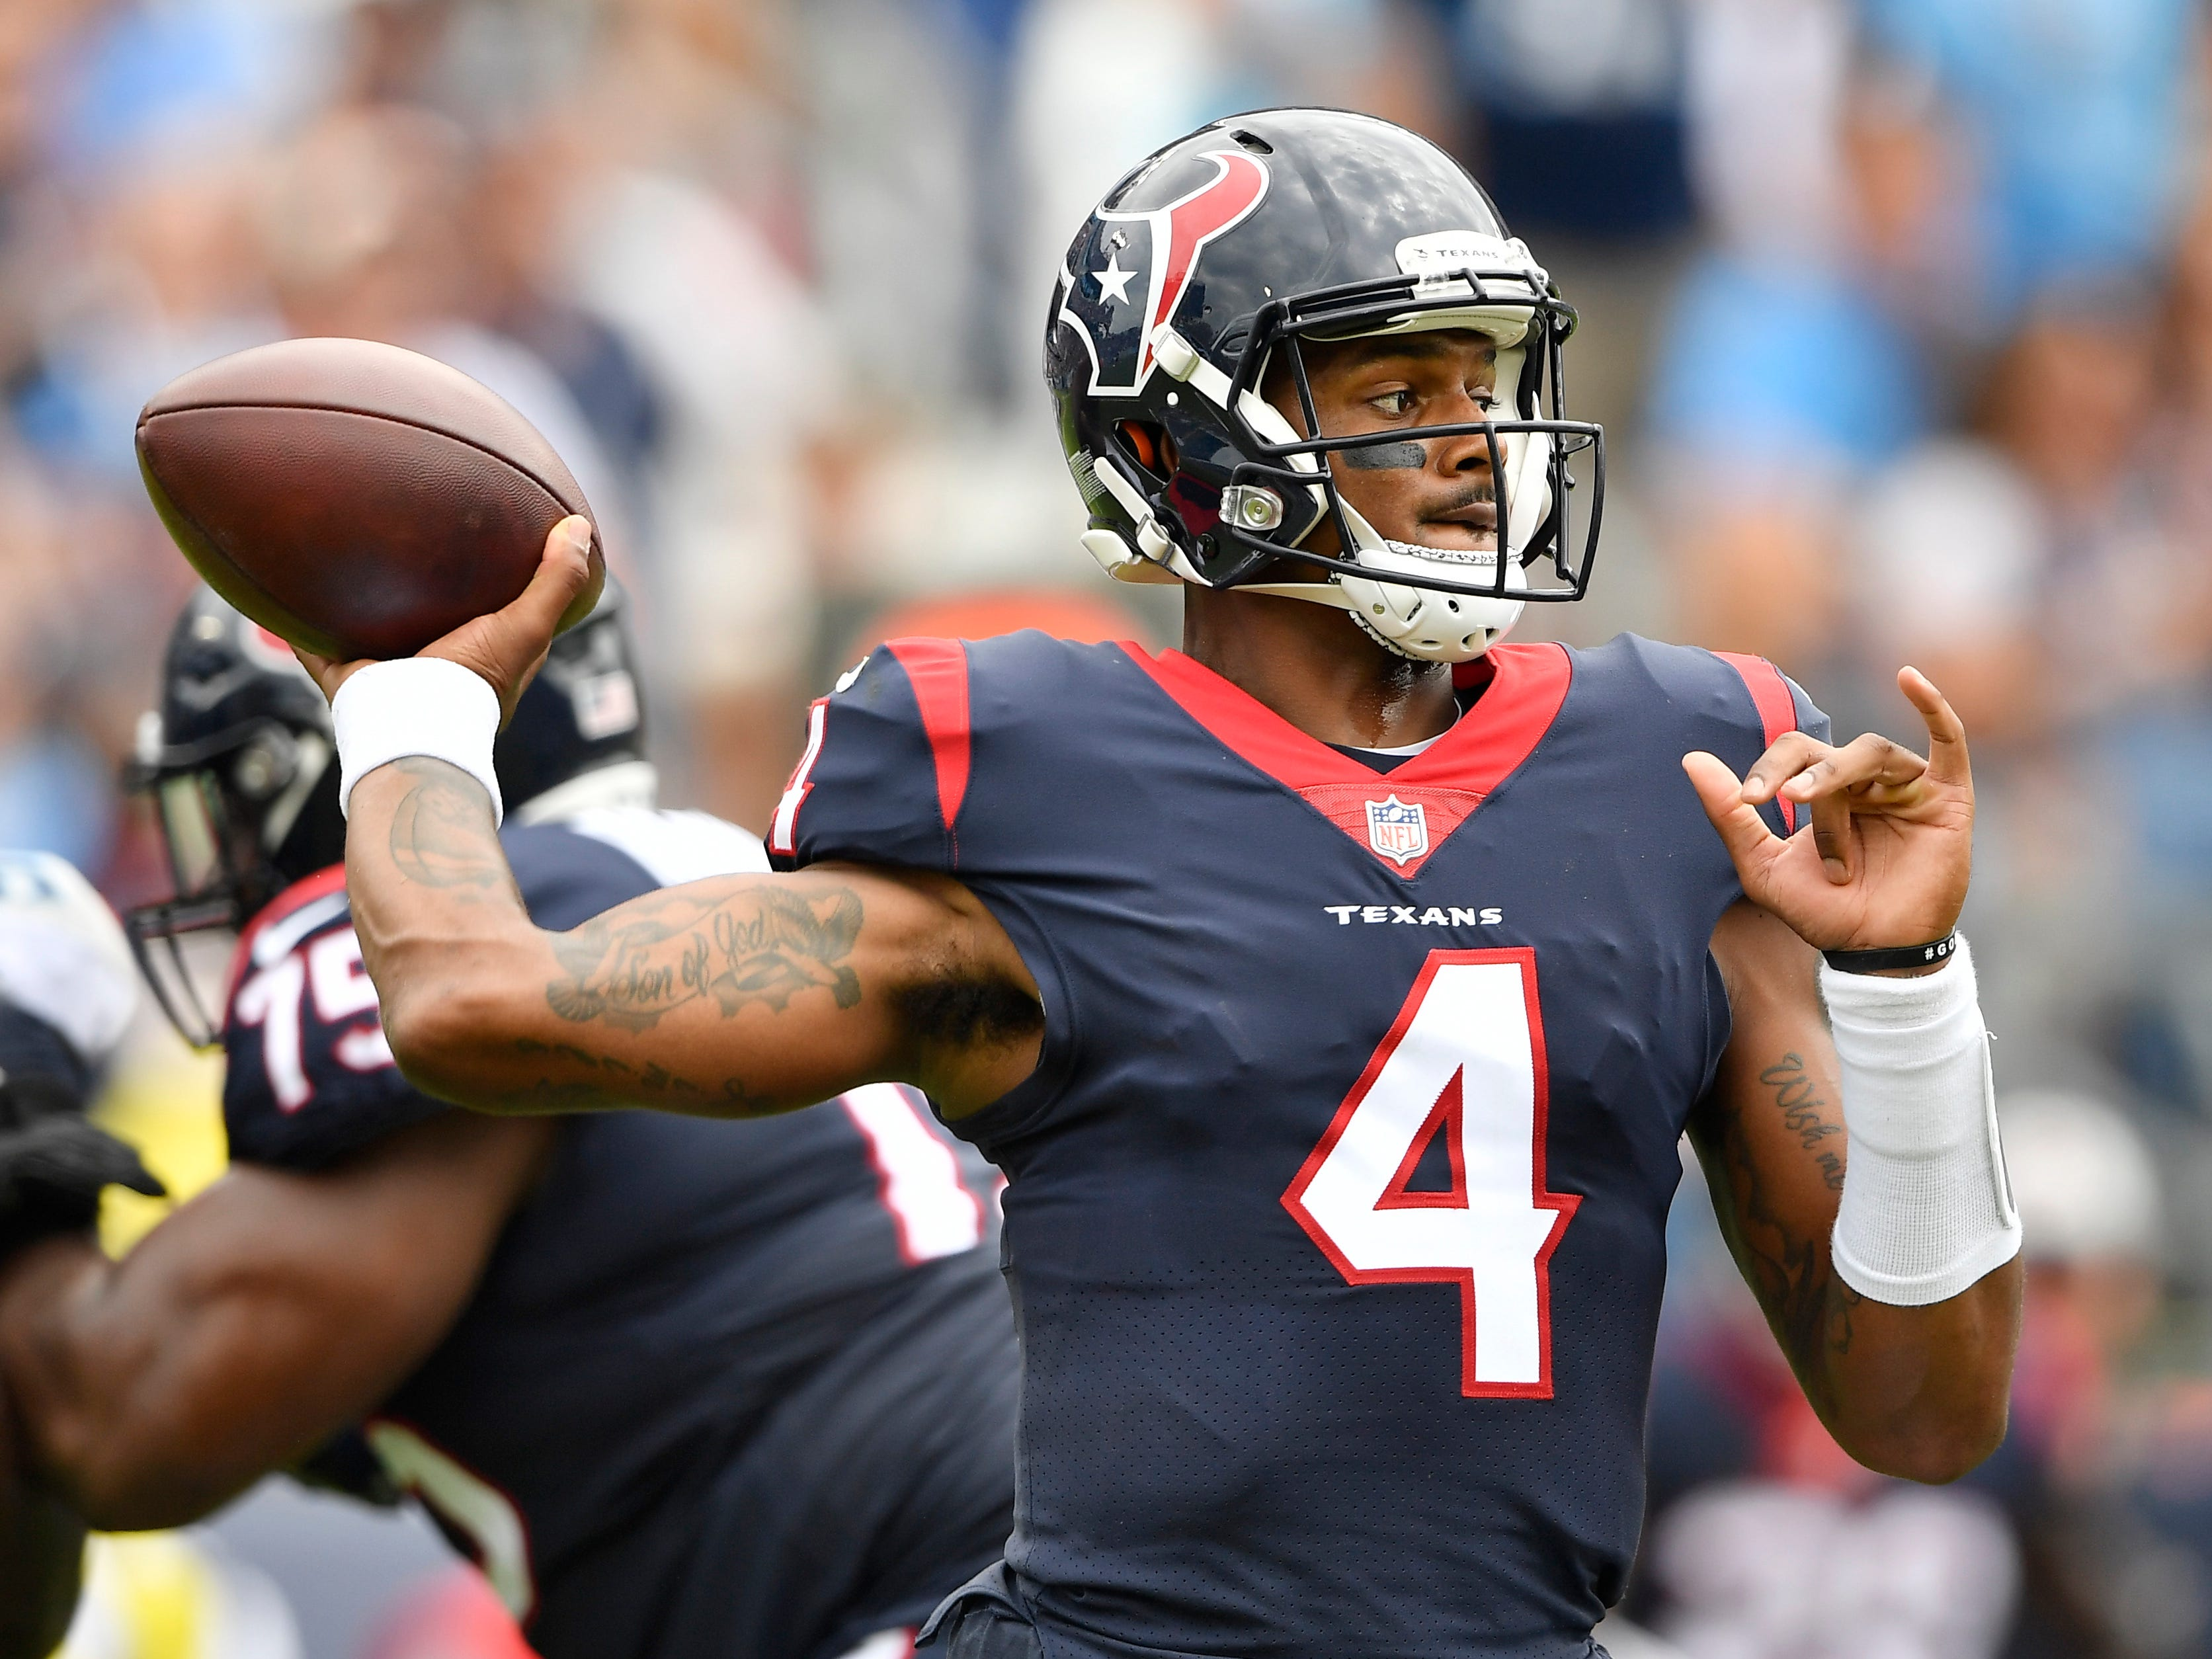 Texans quarterback Deshaun Watson (4) looks to pass in the first half at Nissan Stadium Sunday, Sept. 16, 2018, in Nashville, Tenn.